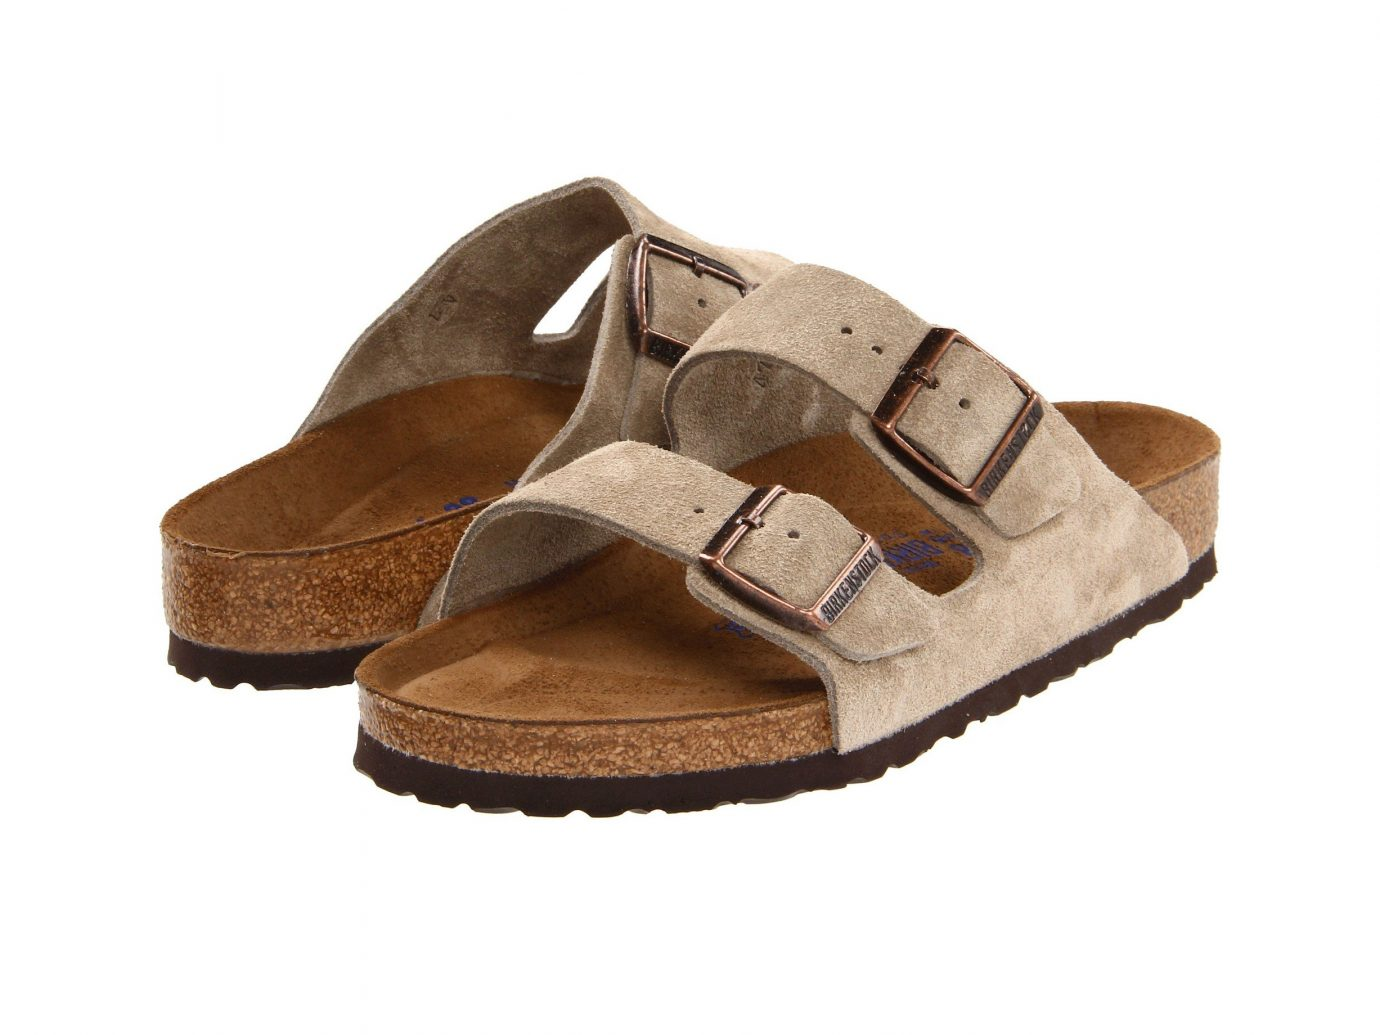 Birkenstock Arizona Soft Suede Sandals